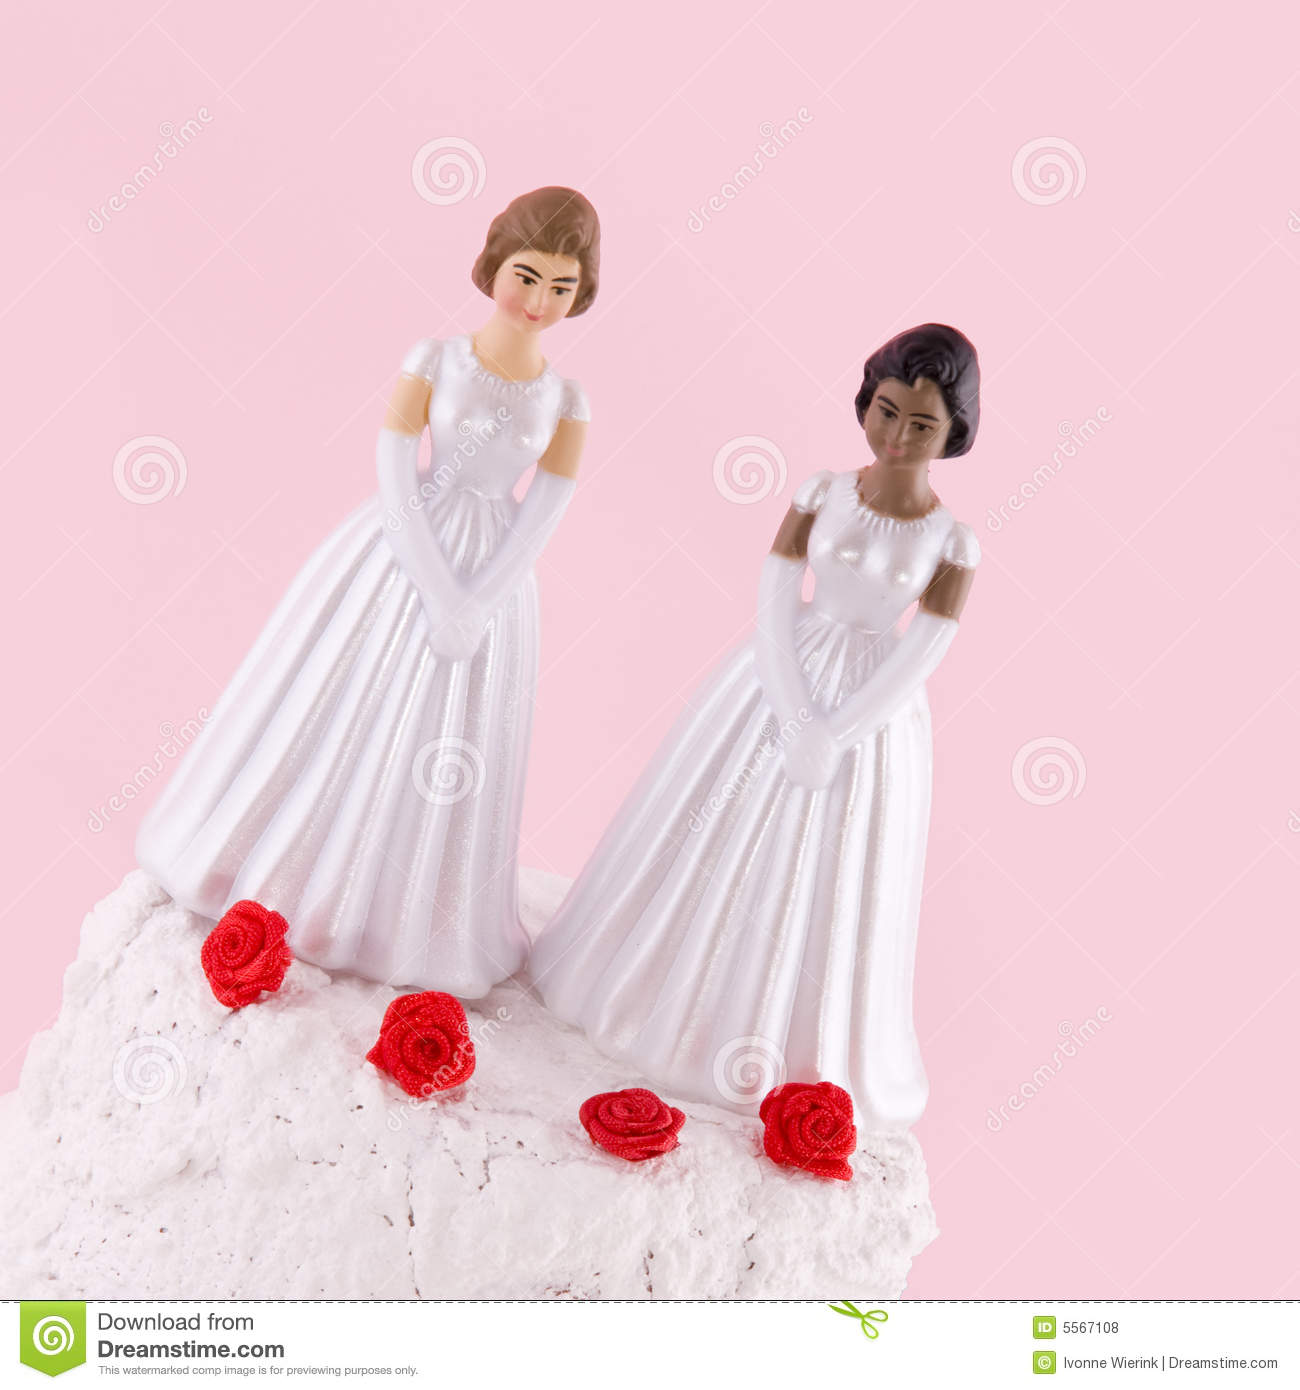 Lesbian Wedding Day Royalty Free Stock Photos